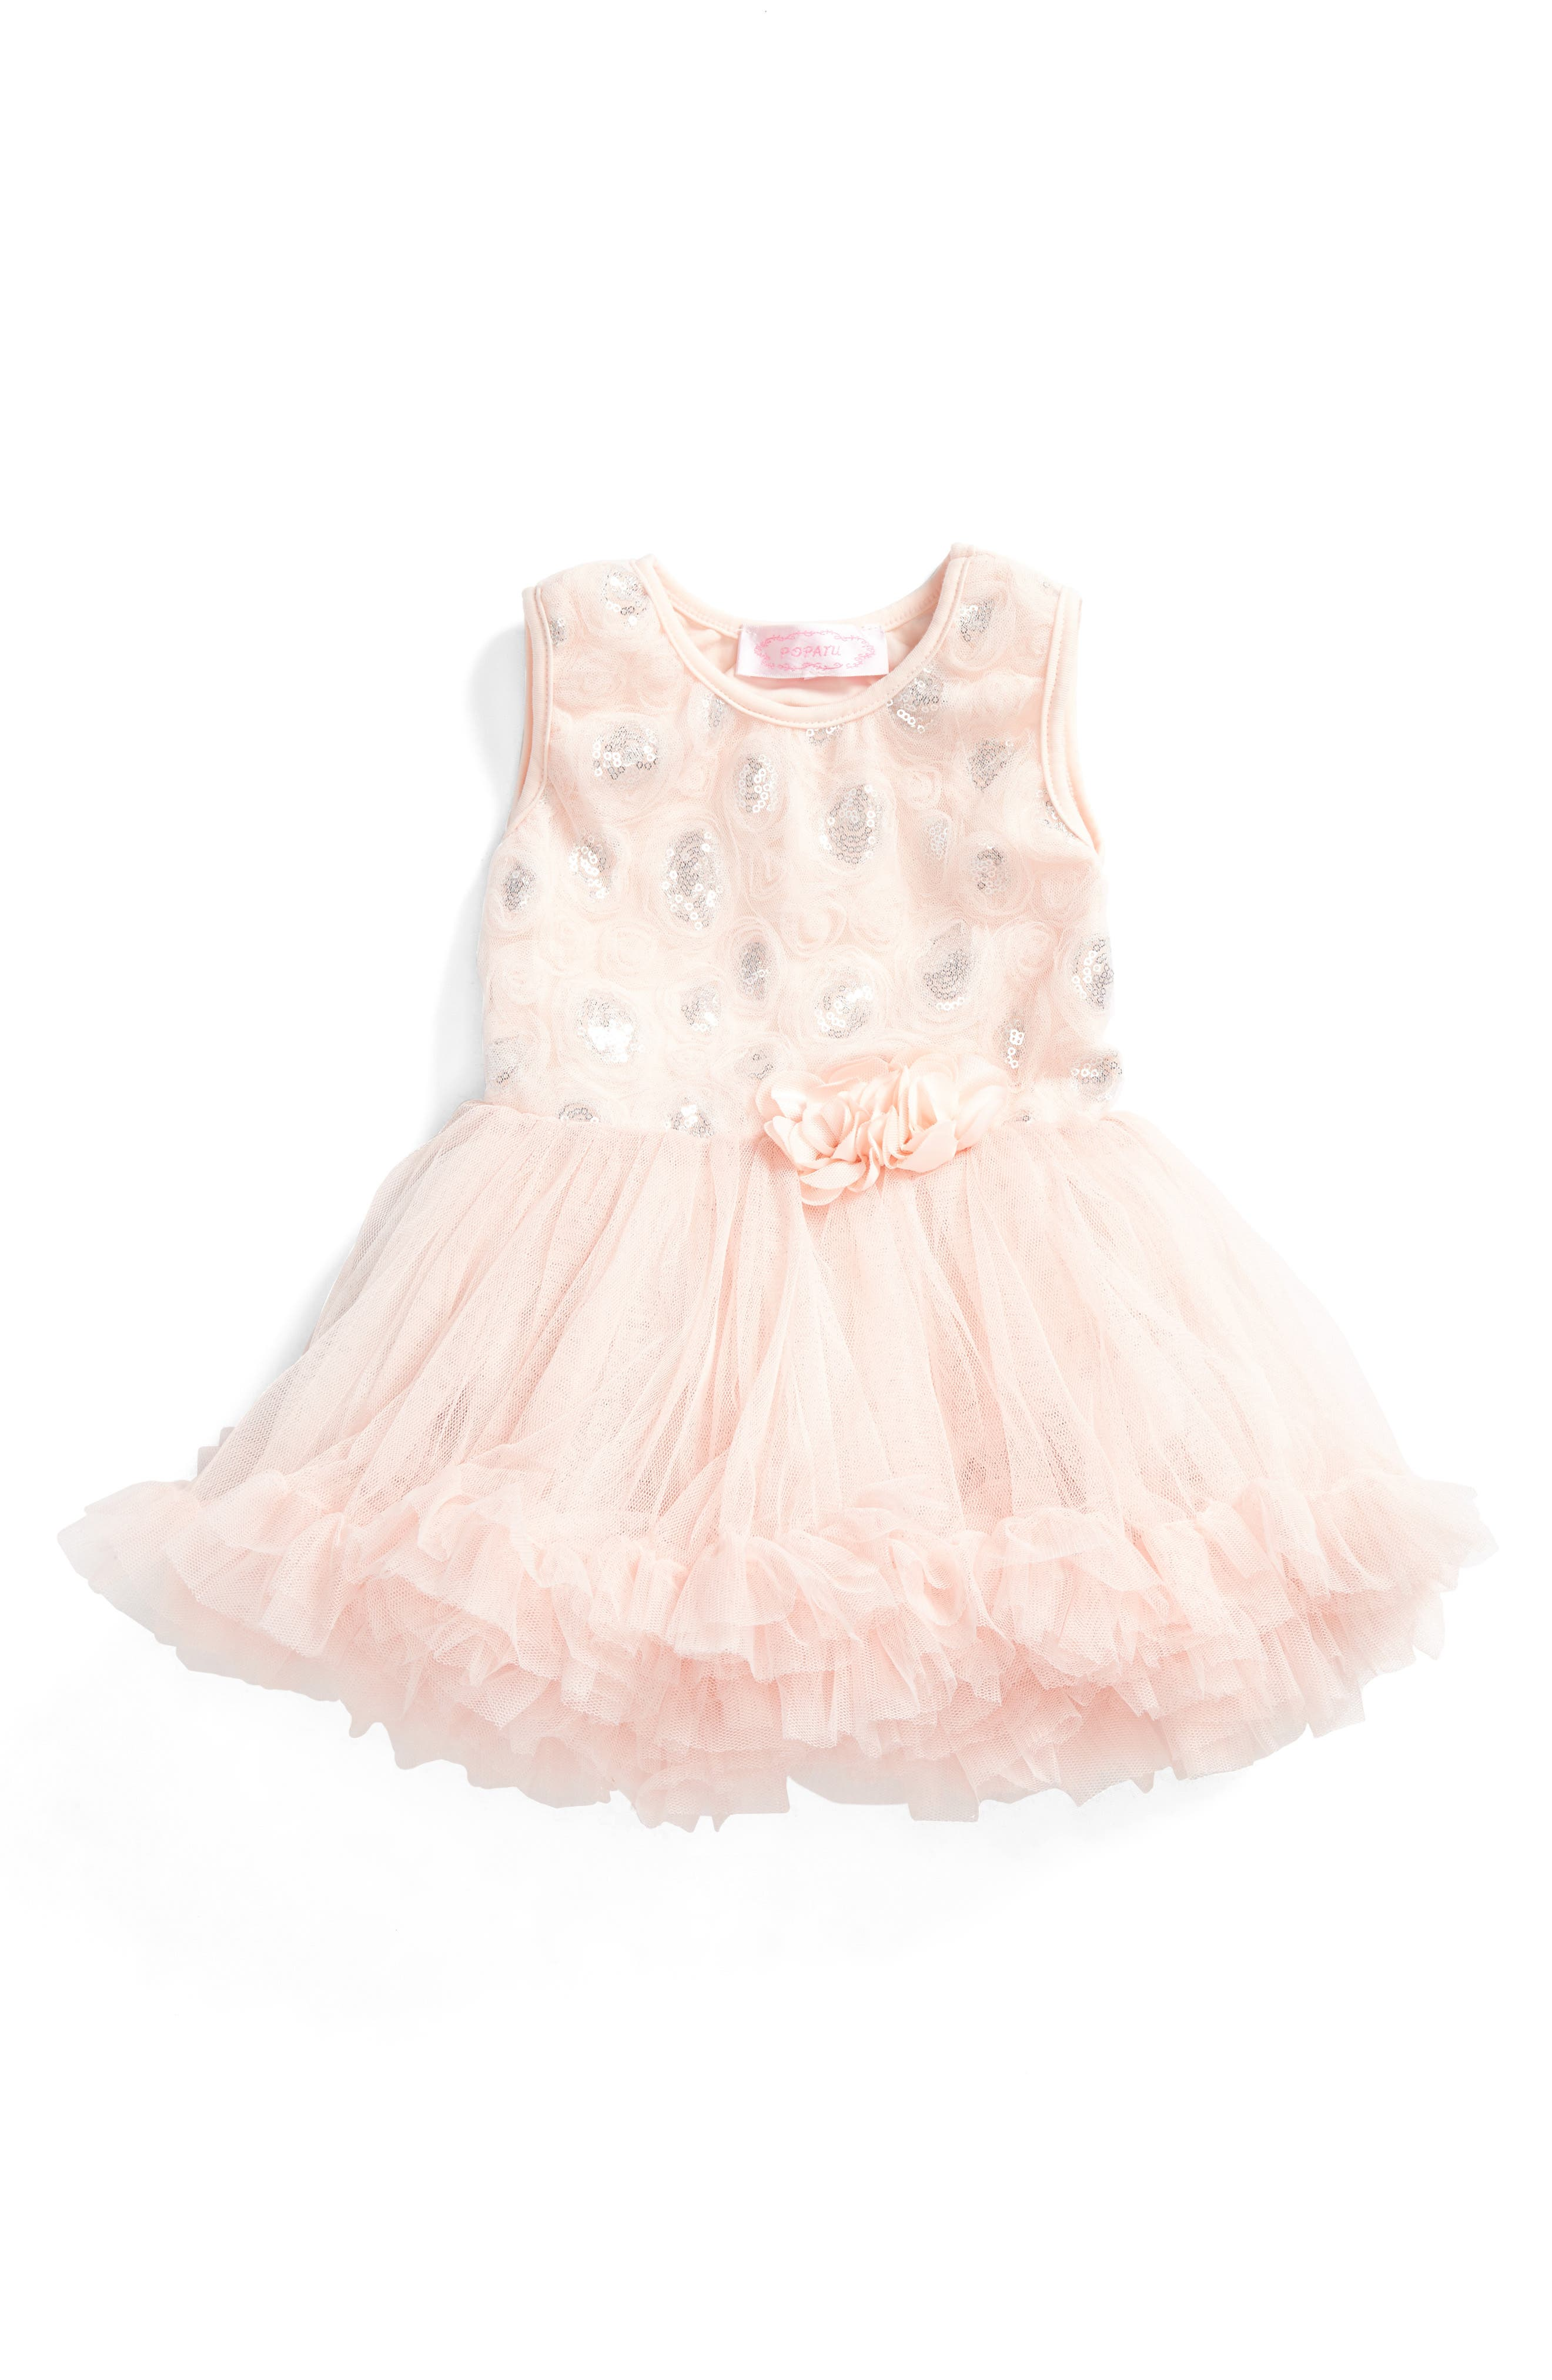 Rosette Sequin Dress,                             Main thumbnail 1, color,                             Dusty Pink